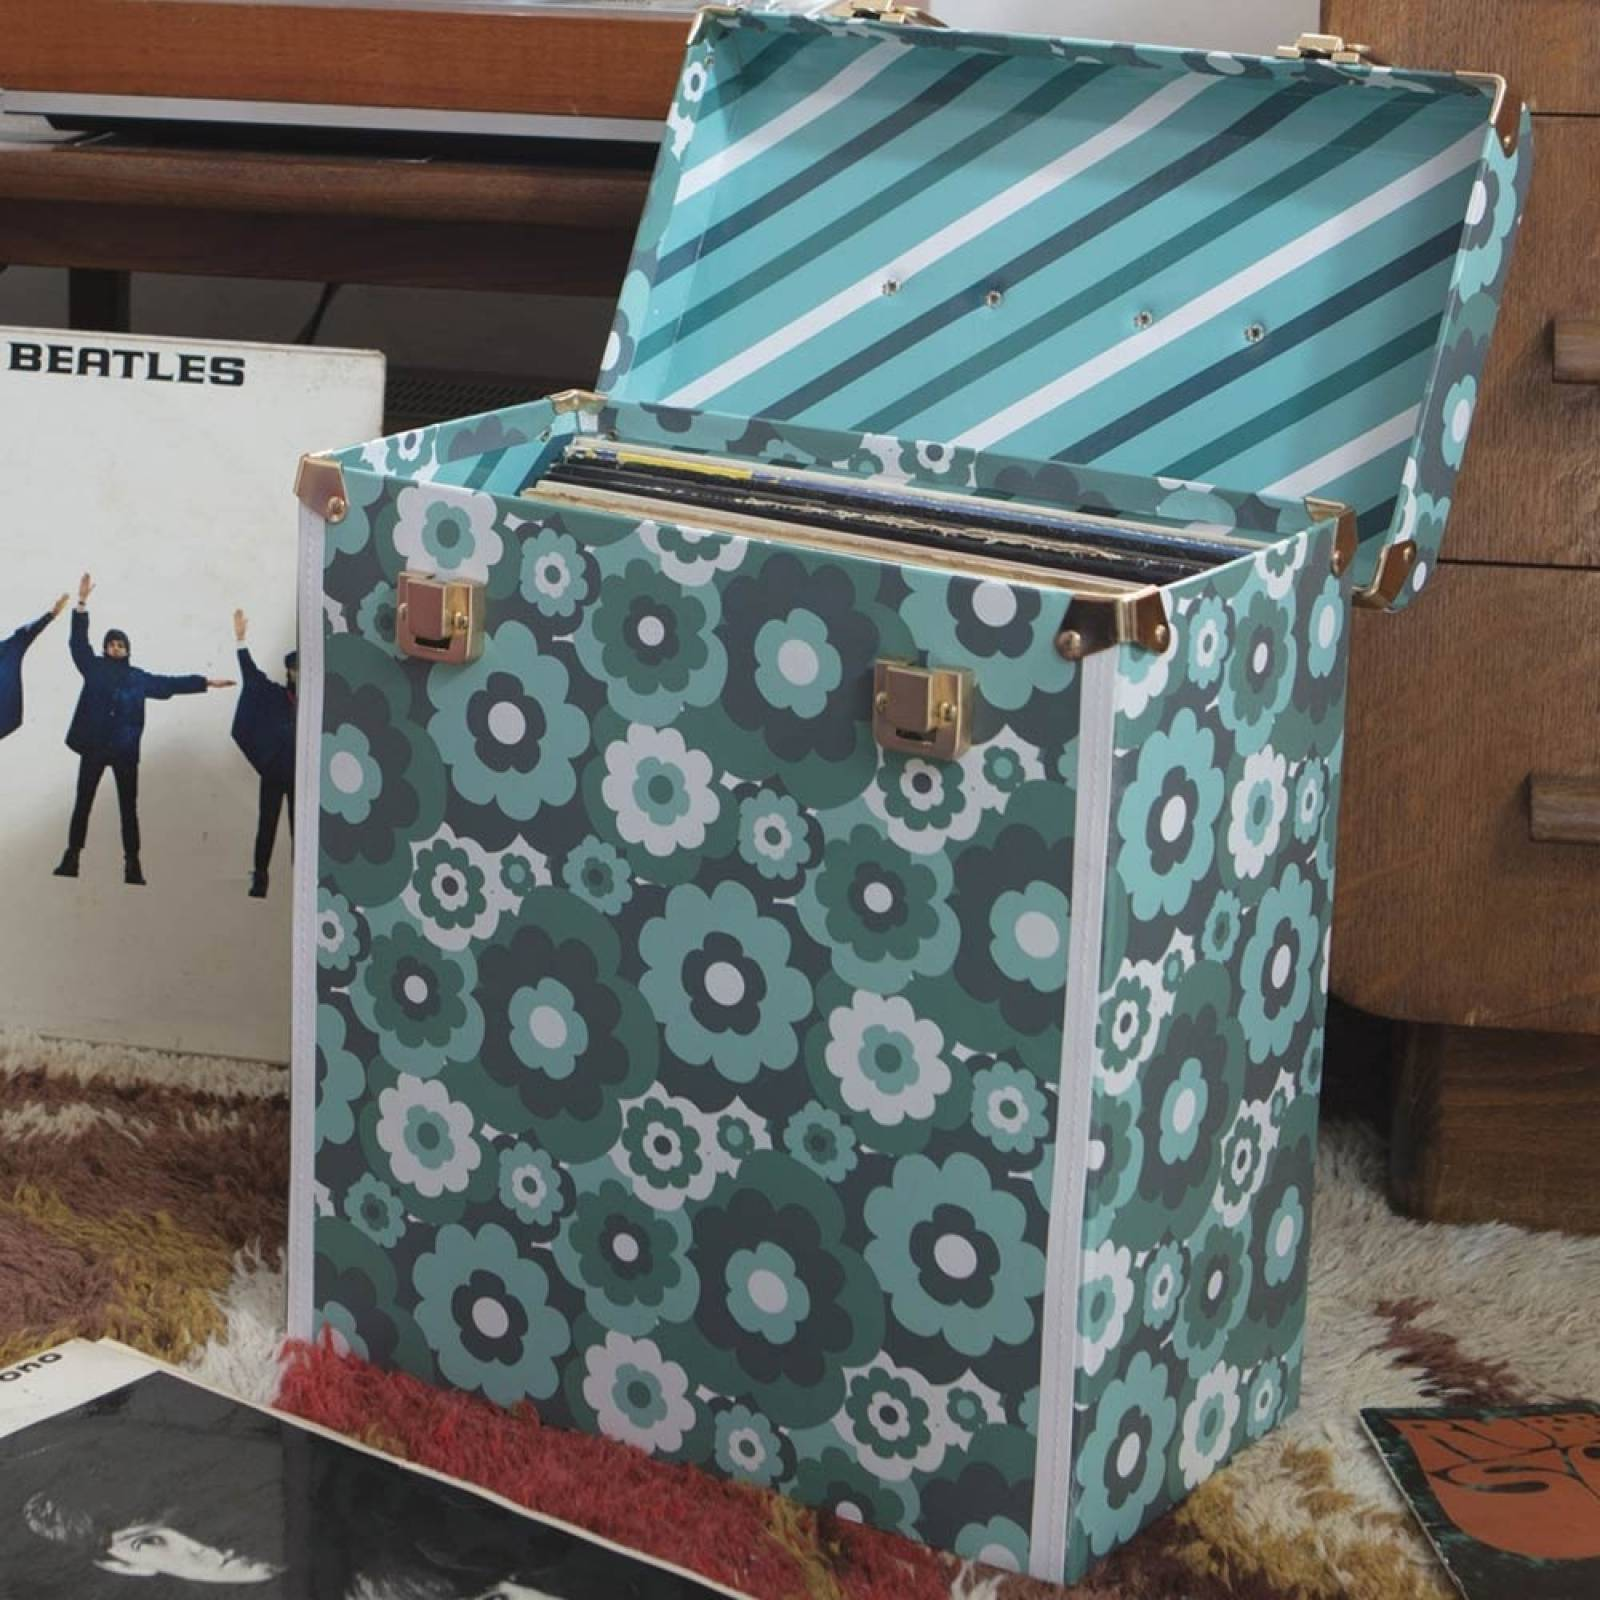 Record Box Suitcase In Bloom Pattern thumbnails